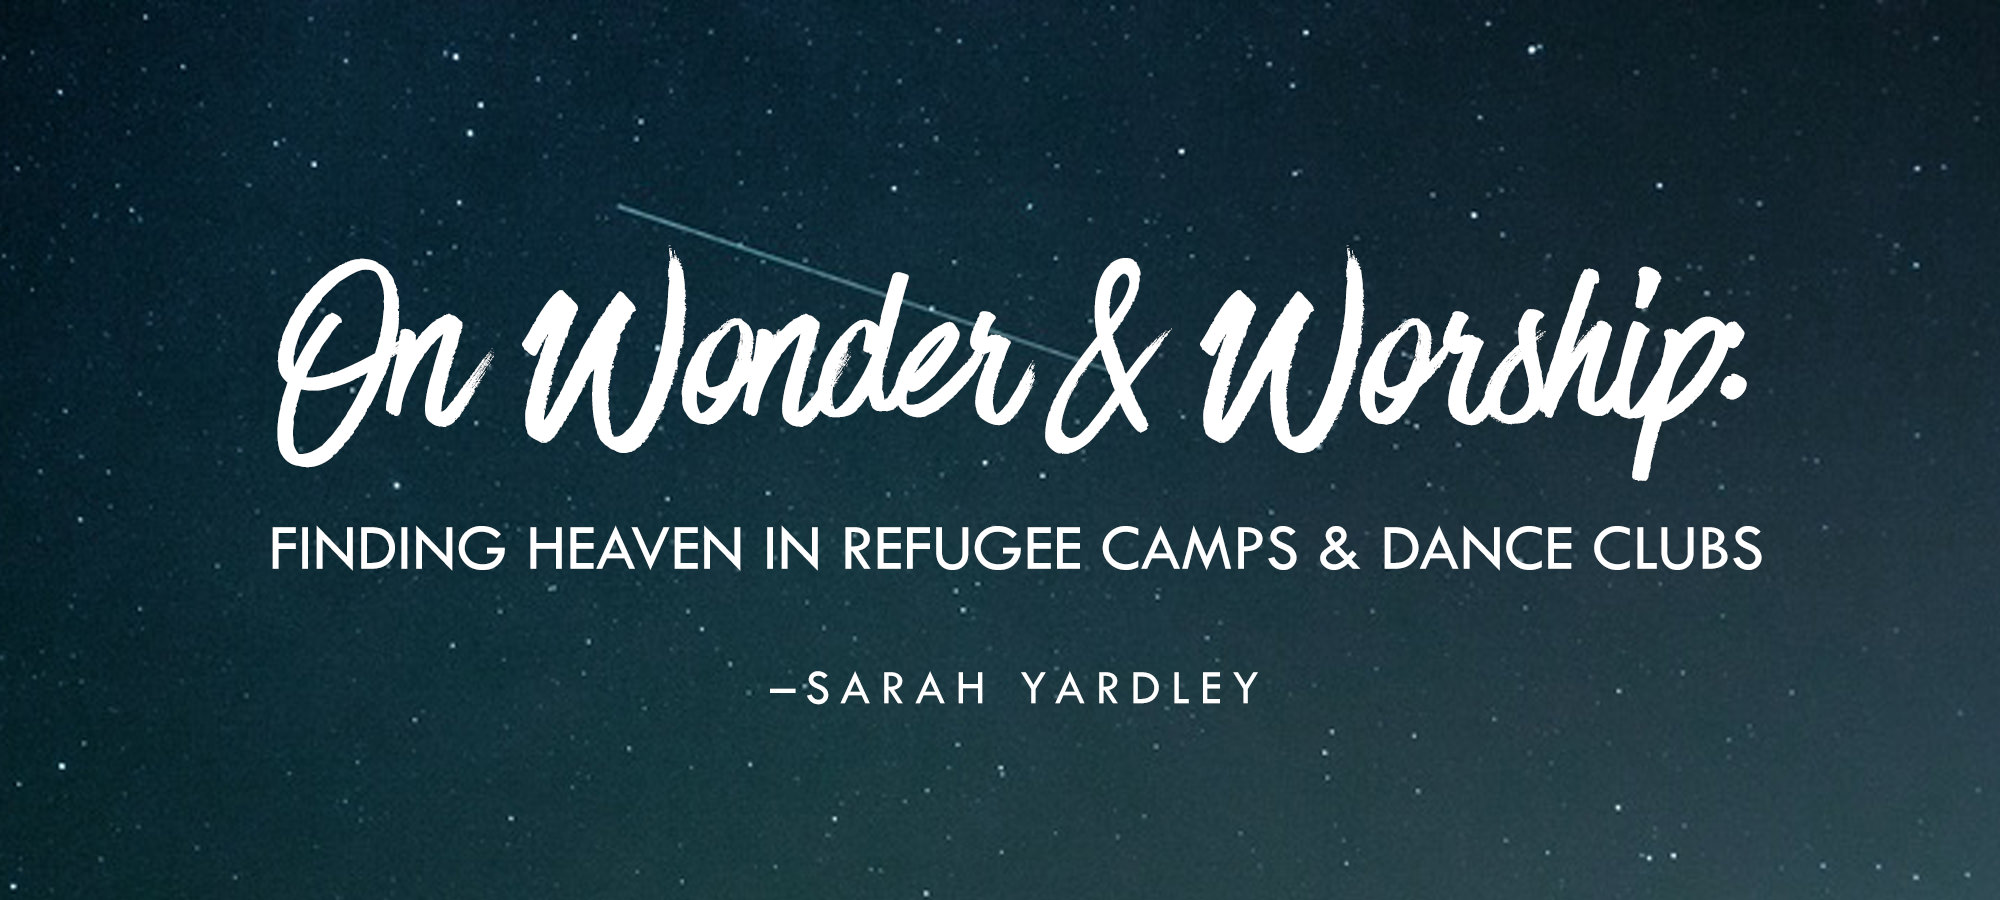 On Wonder & Worship: Finding Heaven in Refugee Camps & Dance Clubs